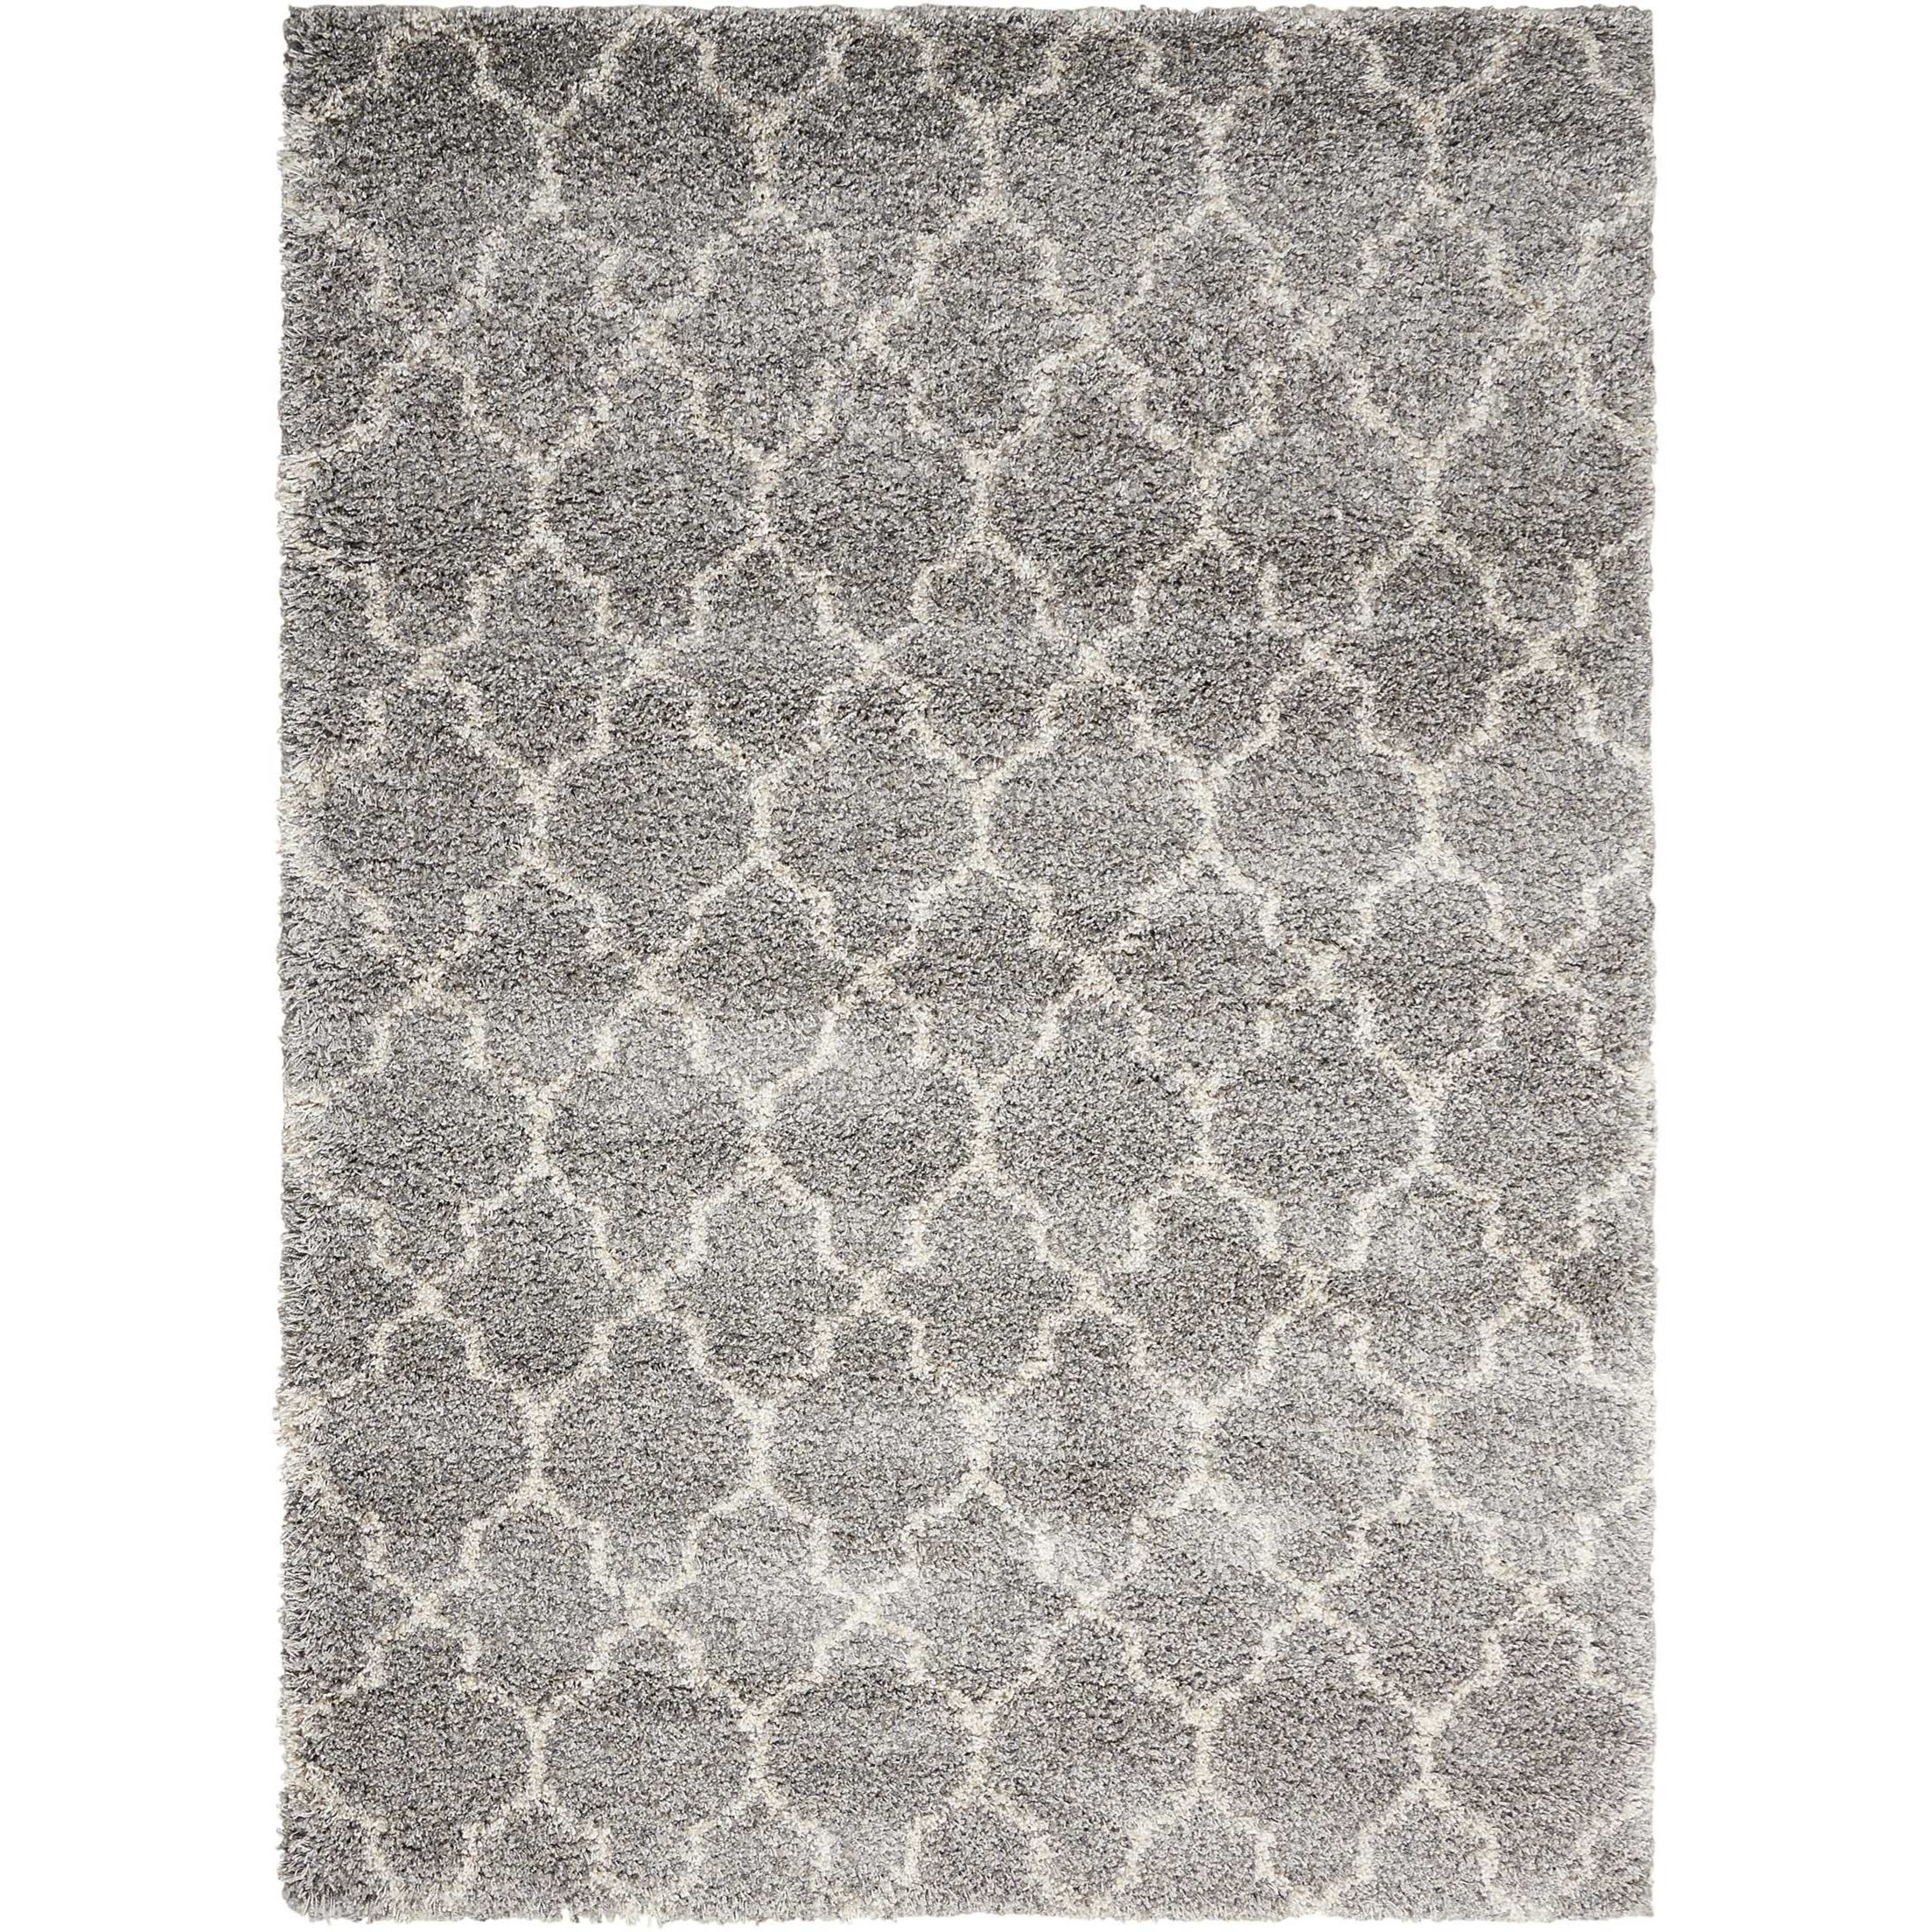 """Amore 7'10"""" x 10'10"""" Ash Rectangle Rug by Nourison at Sprintz Furniture"""